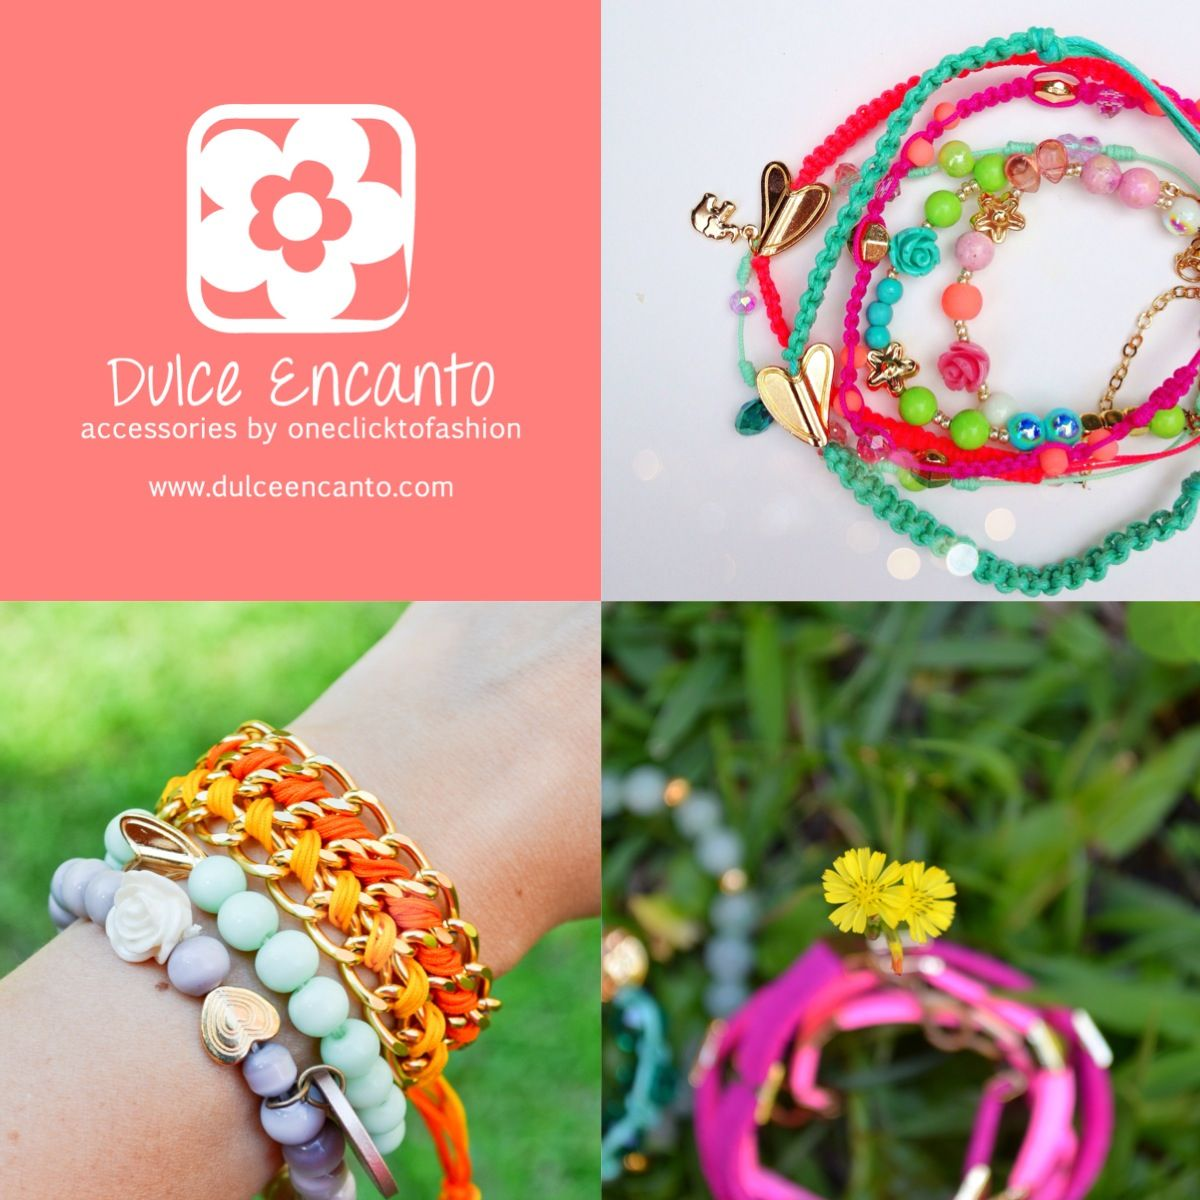 www.dulceencanto.com #accesorios #accessories #aretes #earrings #collares #necklaces #pulseras #bracelets #bolsos #bags #bisuteria #jewelry #medellin #colombia #moda #fashion